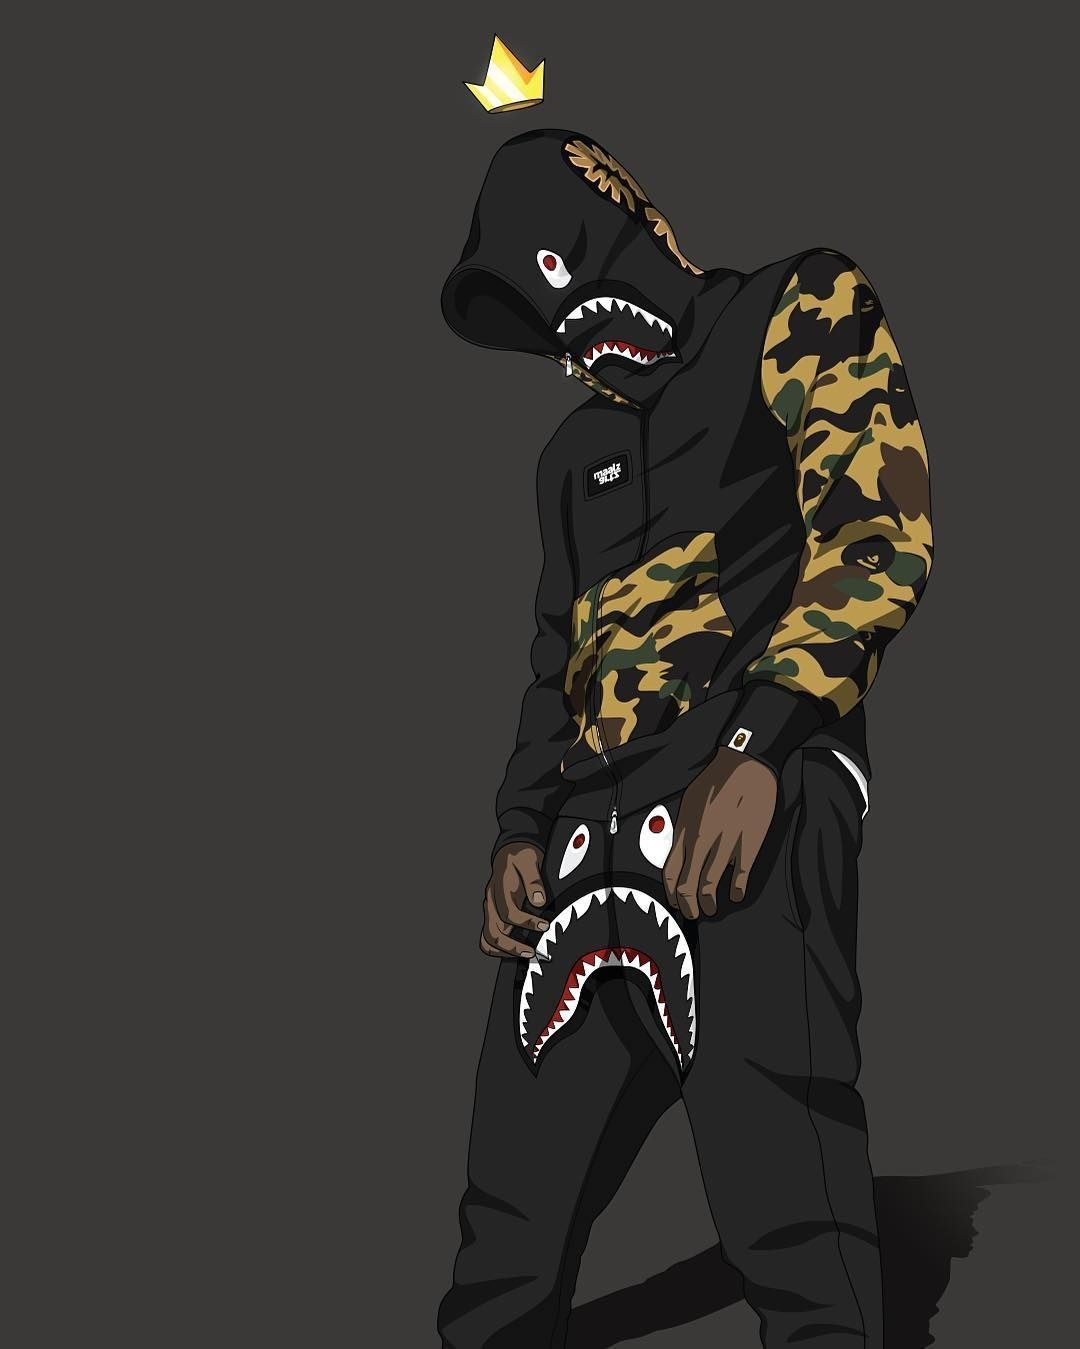 Hypebeast Cartoon Wallpapers   Top Hypebeast Cartoon 1080x1349